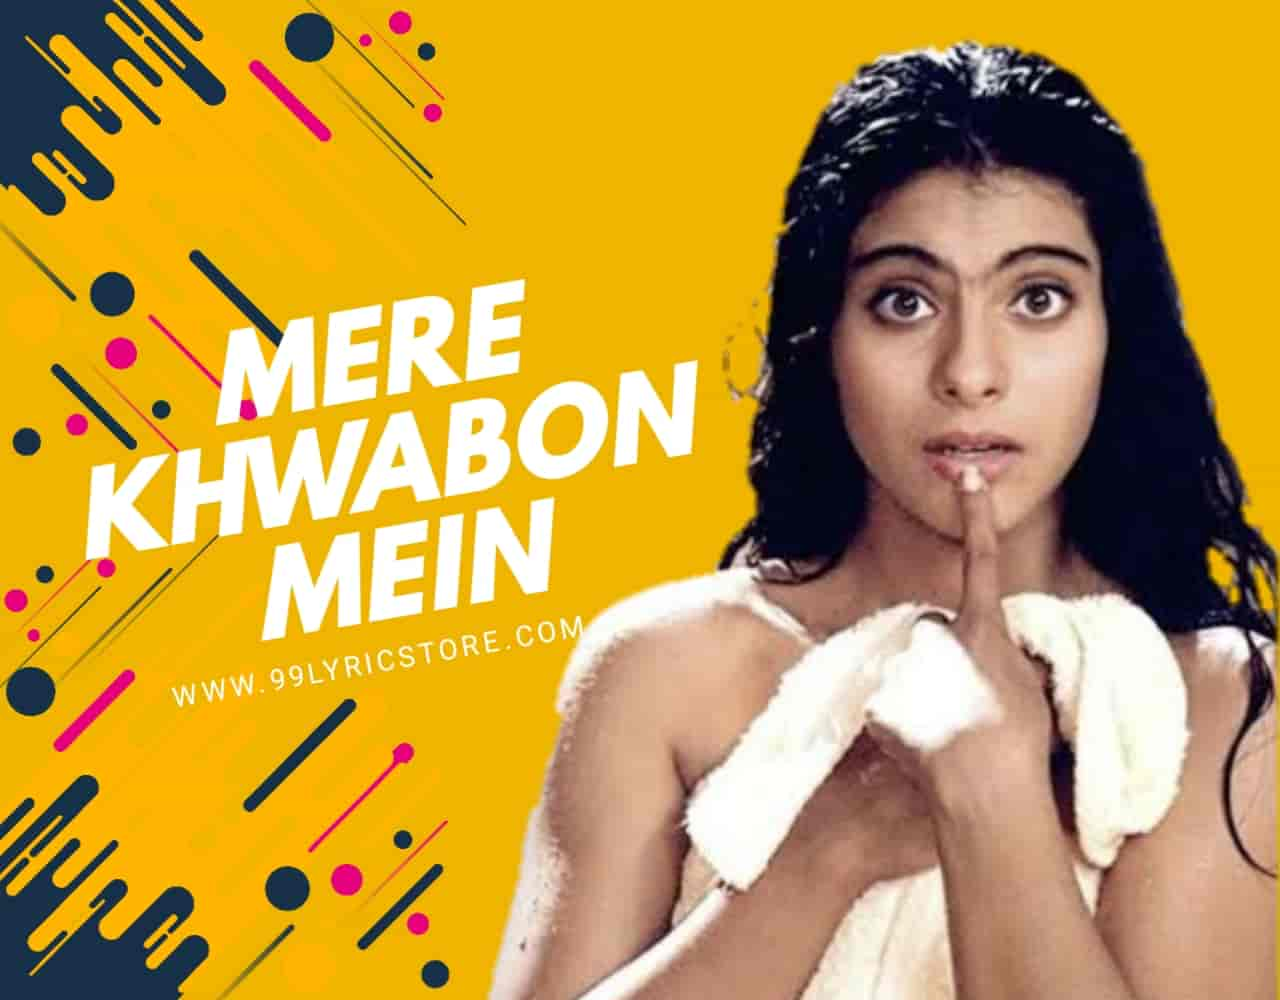 Mere Khwabon Mein Hindi Love Song Lyrics, Sung By Lata Mangeshkar.